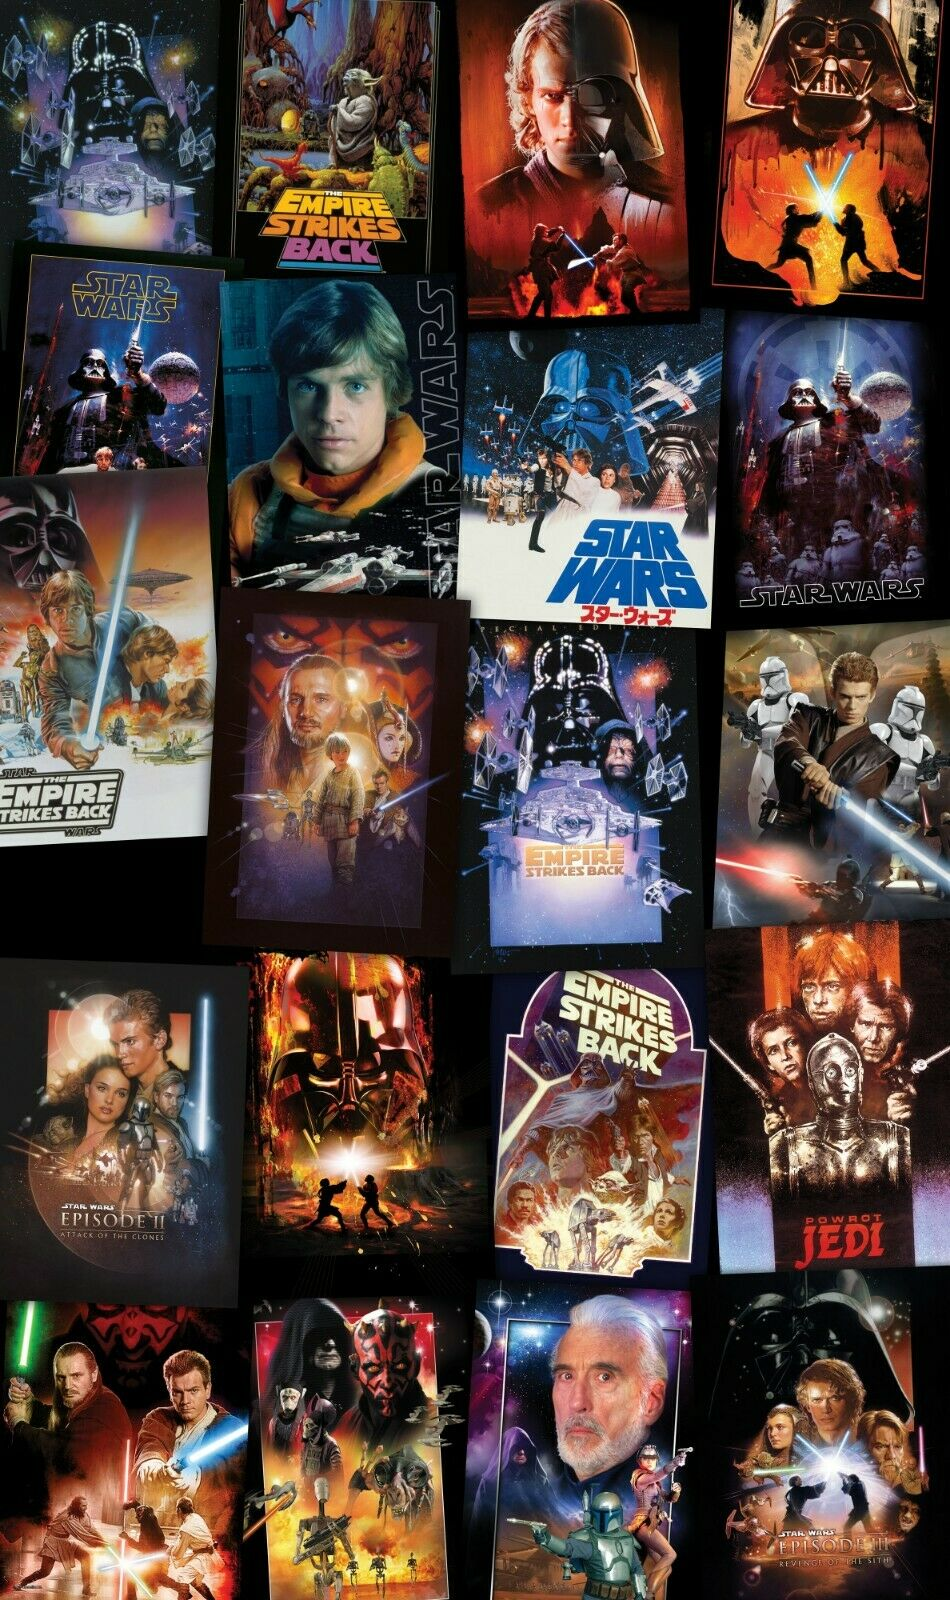 200x120cm Large wallpaper Easy to Install Star Wars Collage wall mural poster